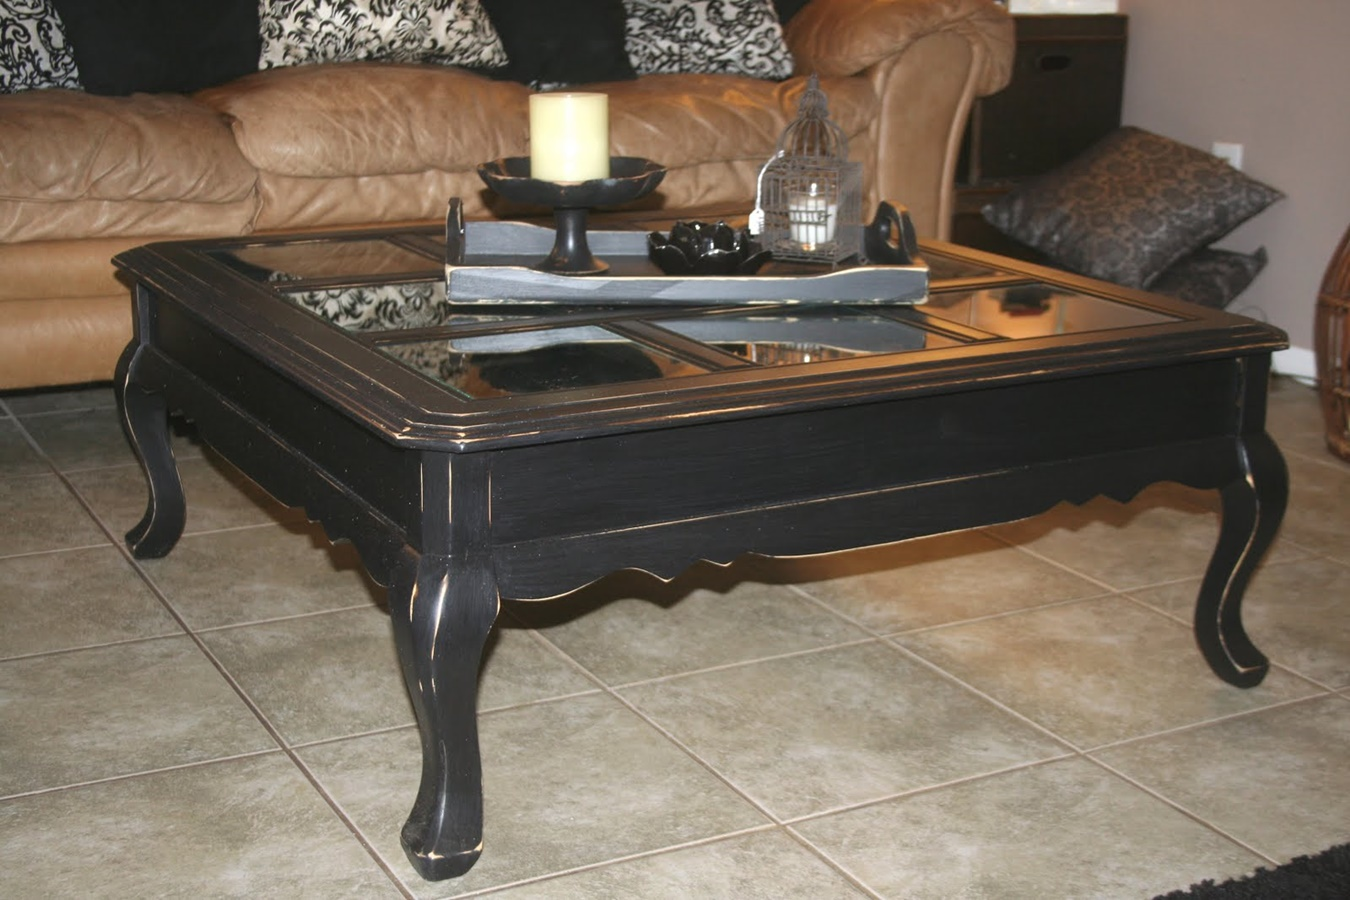 black distressed coffee table wood and end tables spray paint what size lamp for living room amish dining chairs pine side medium dog cage white furniture sofa set round glass